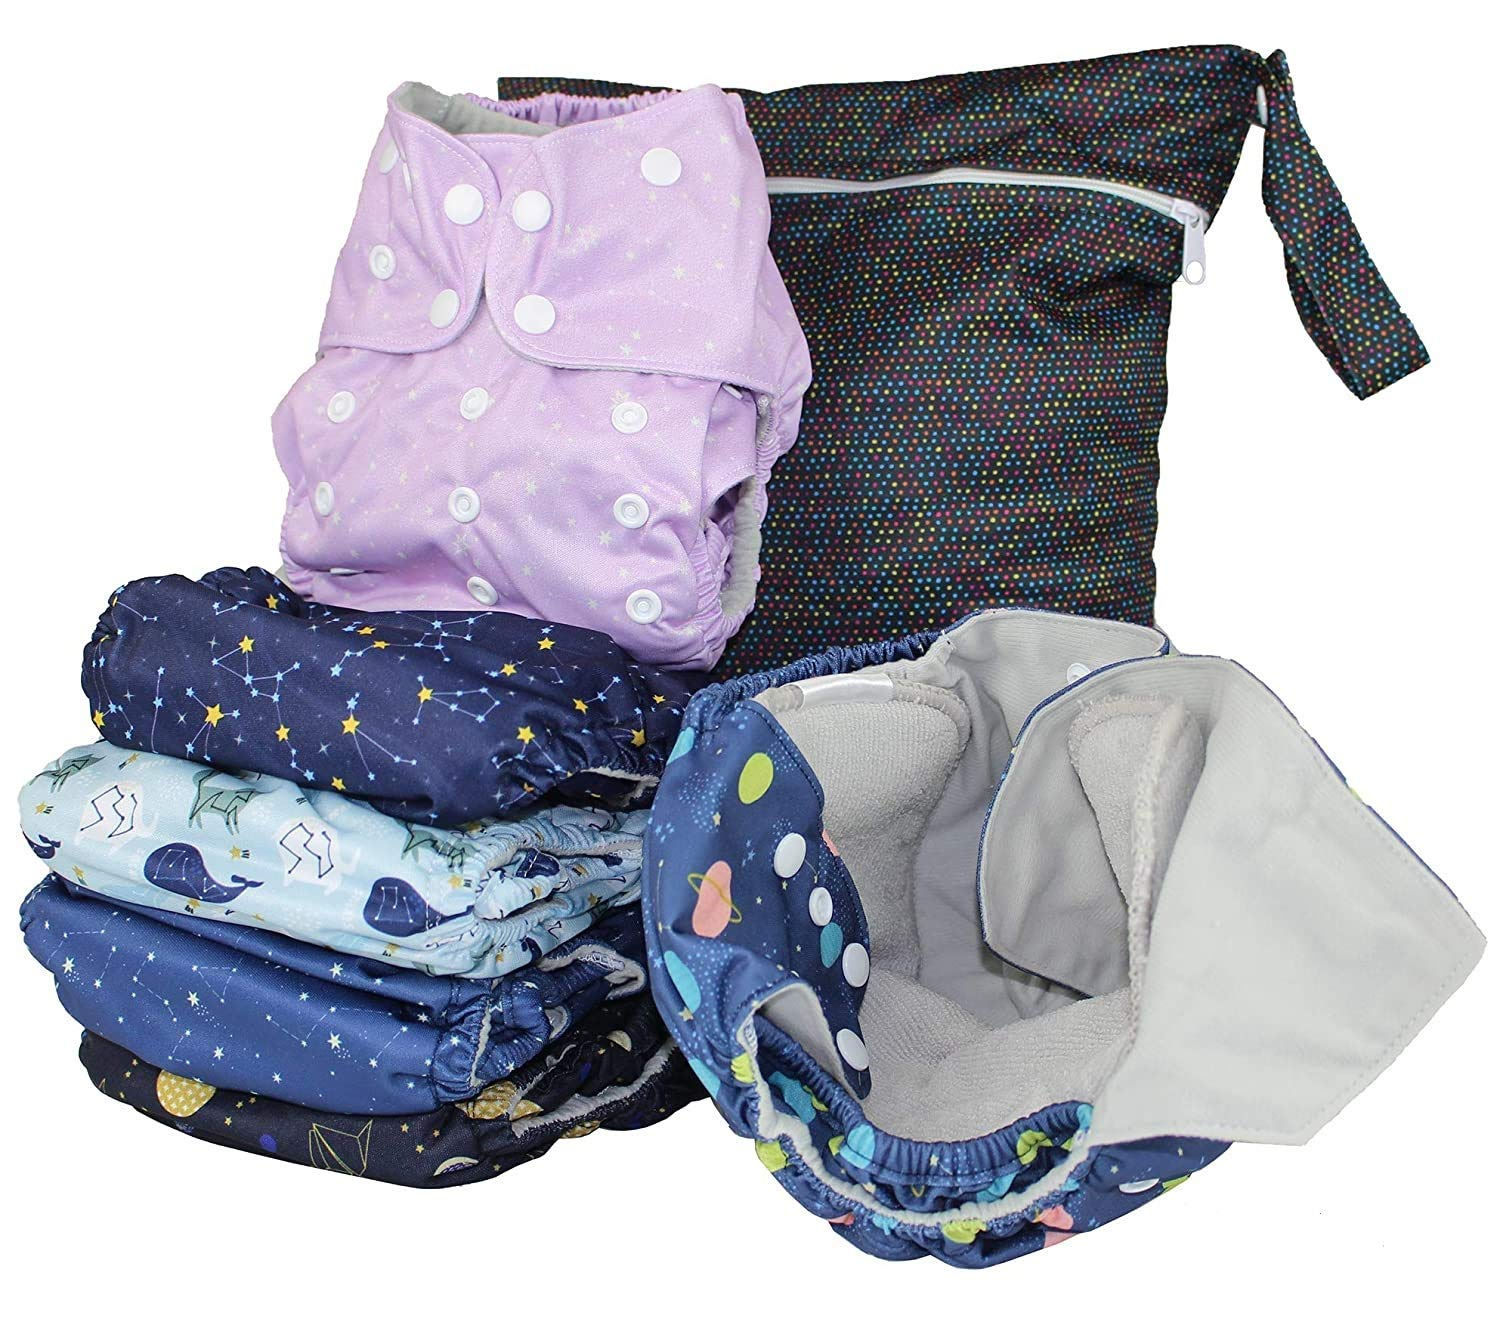 Simple, reusable cloth diapers for kids.